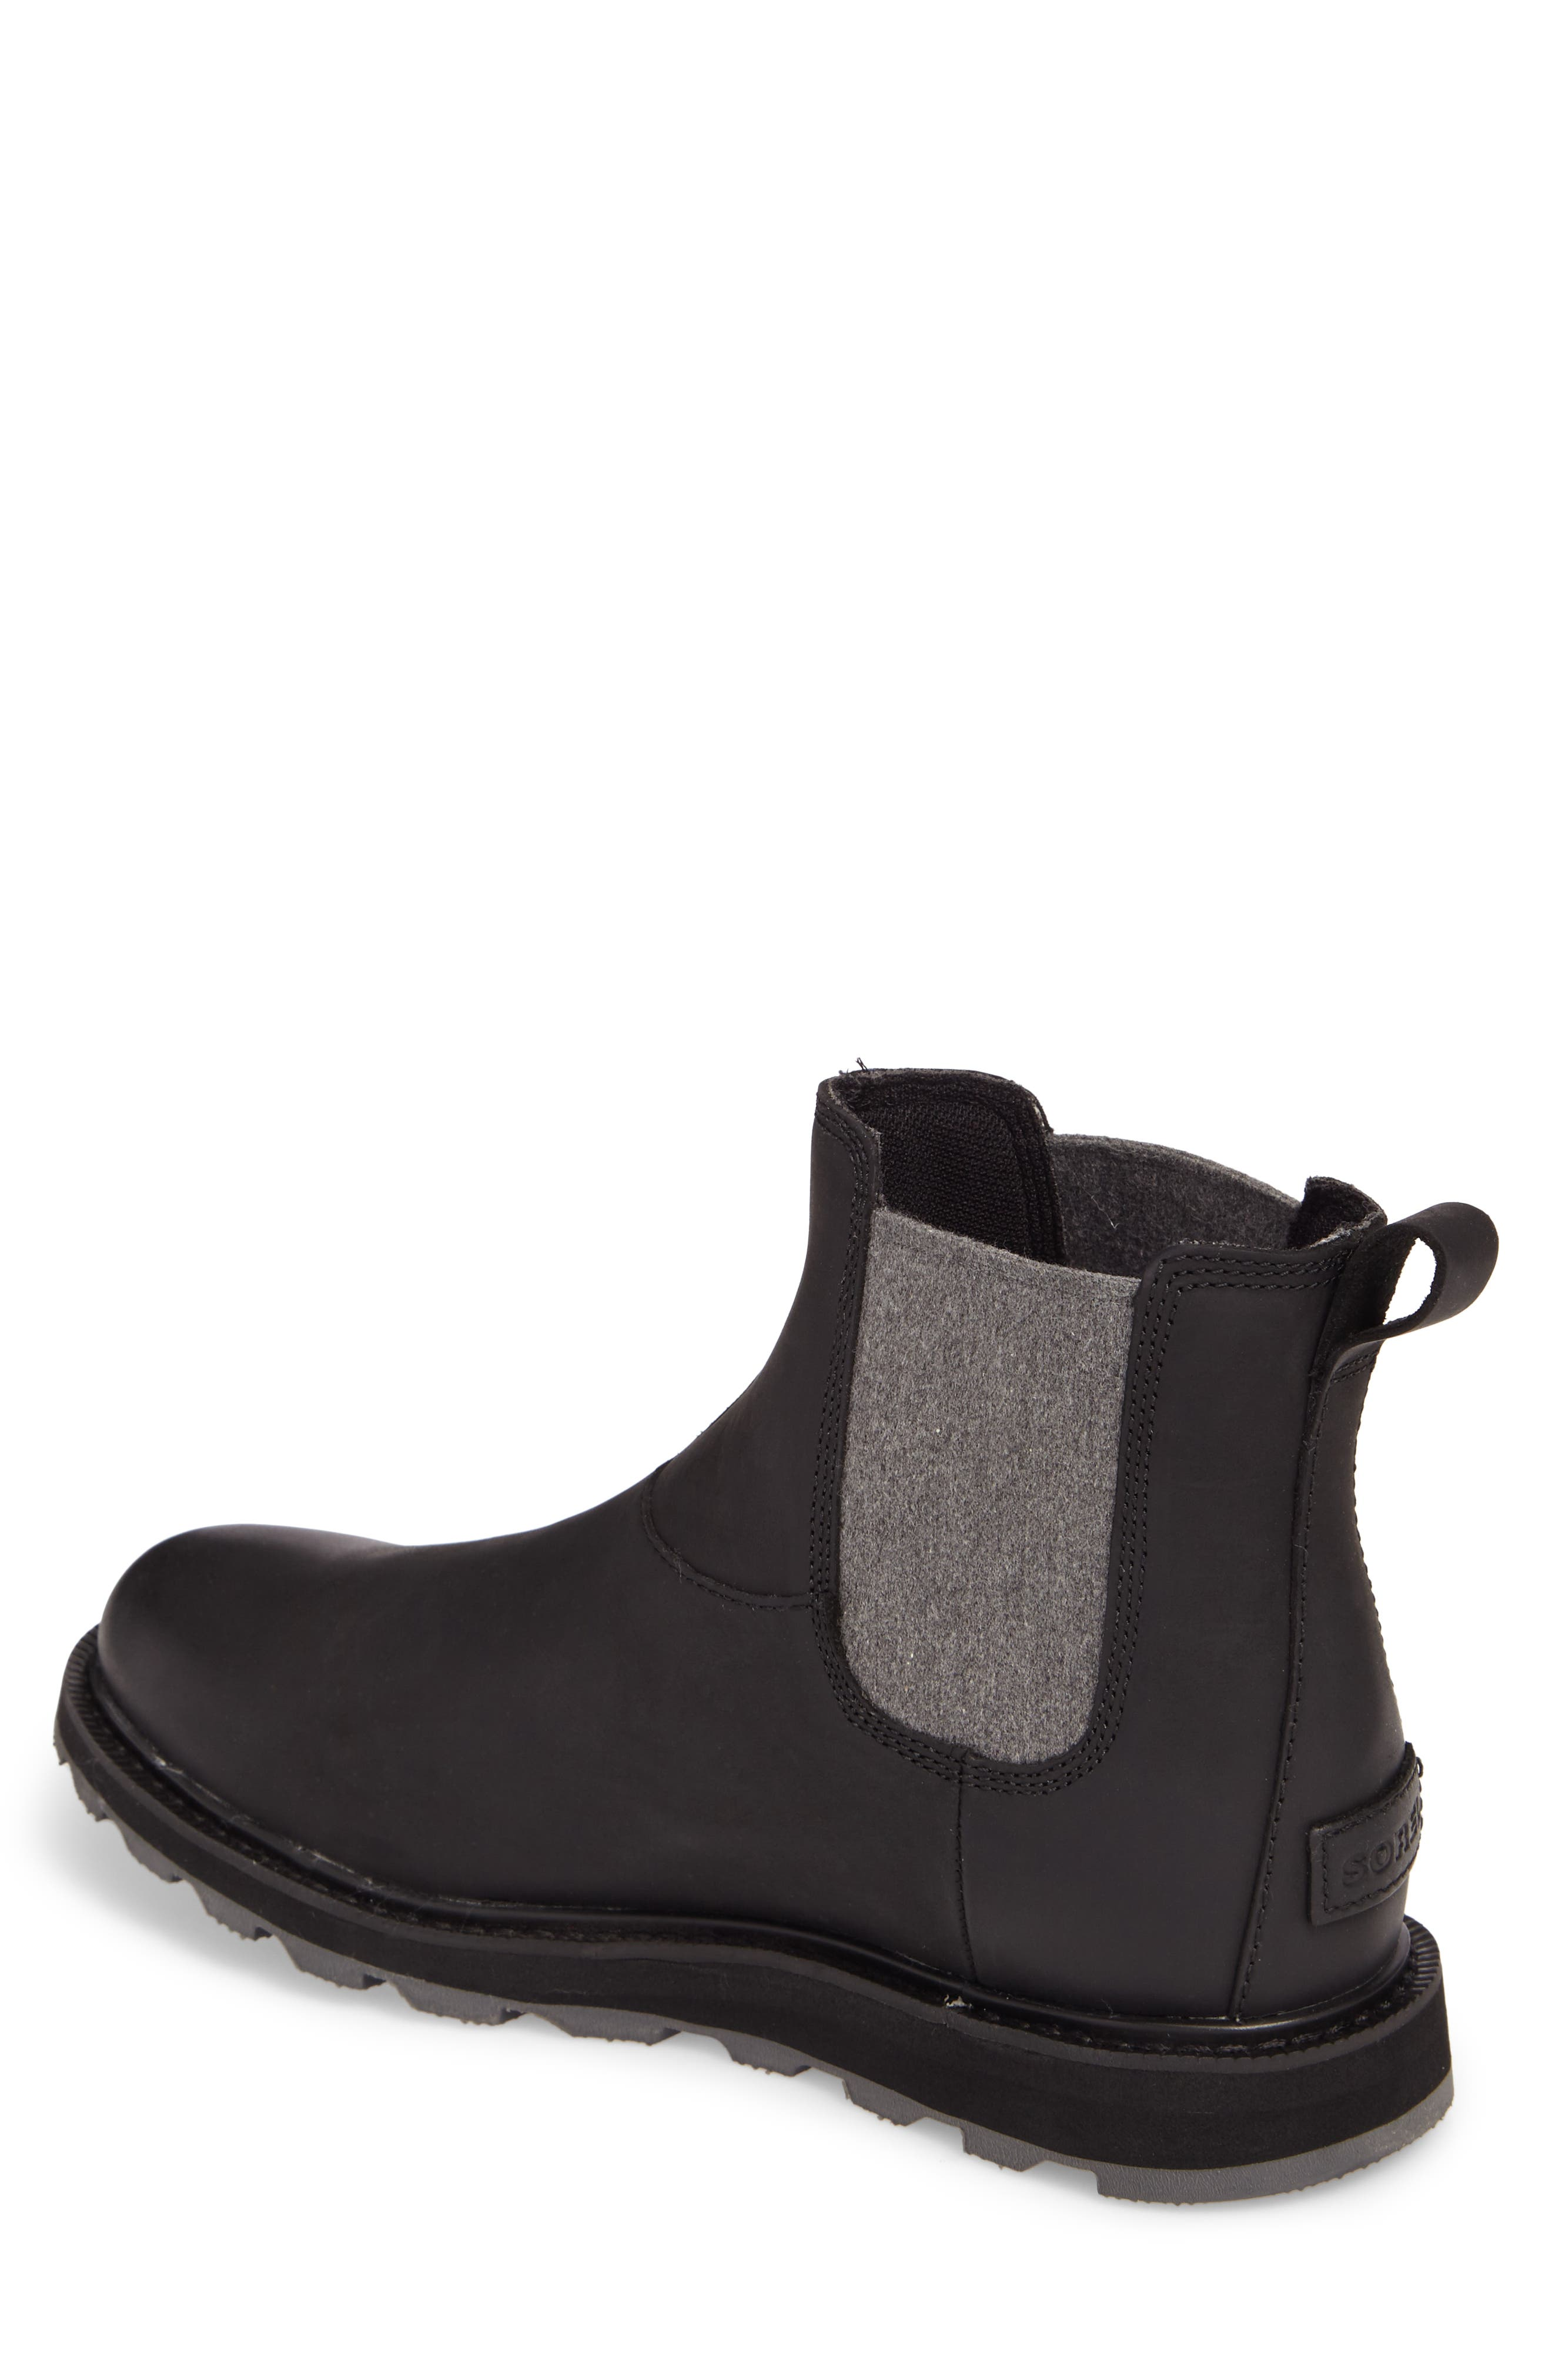 Madson Waterproof Chelsea Boot,                             Alternate thumbnail 2, color,                             BLACK